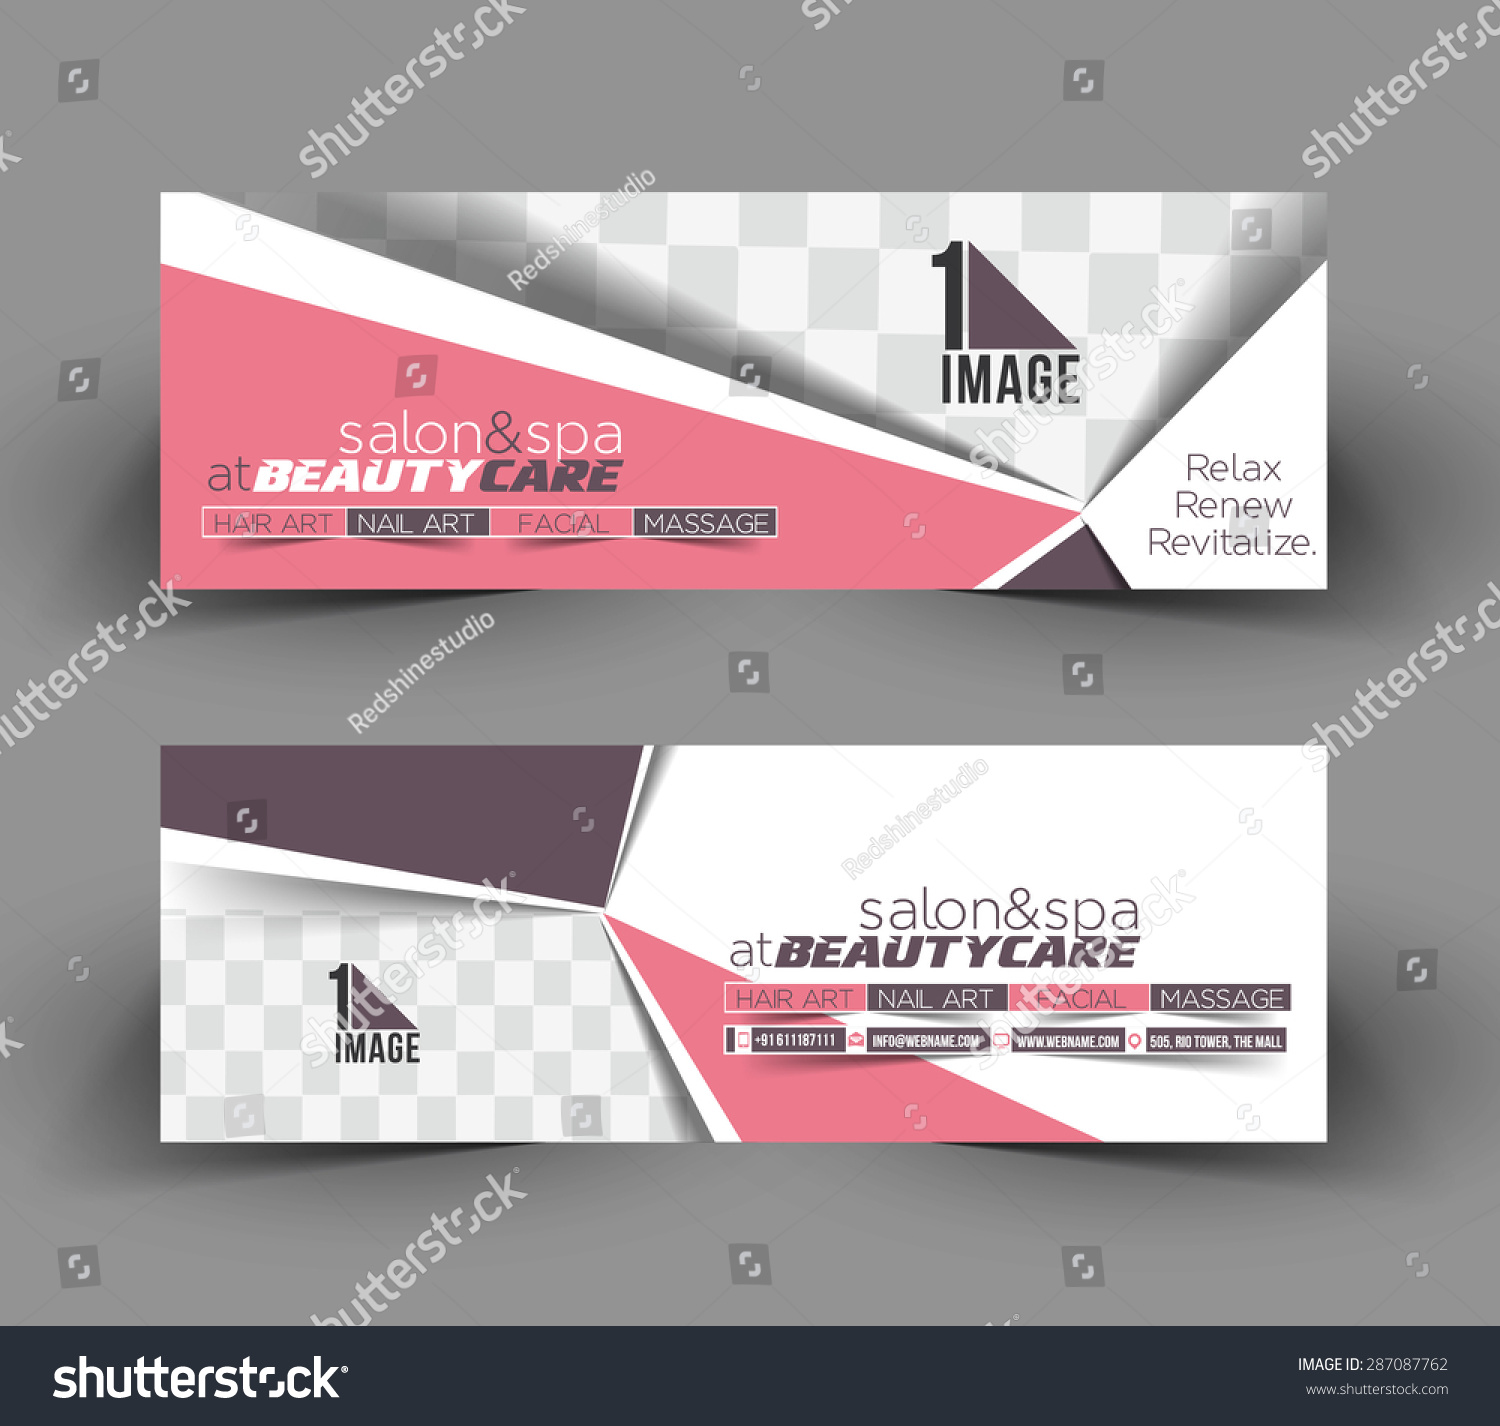 beauty care business ad web banner stock vector  beauty care business ad web banner header layout template